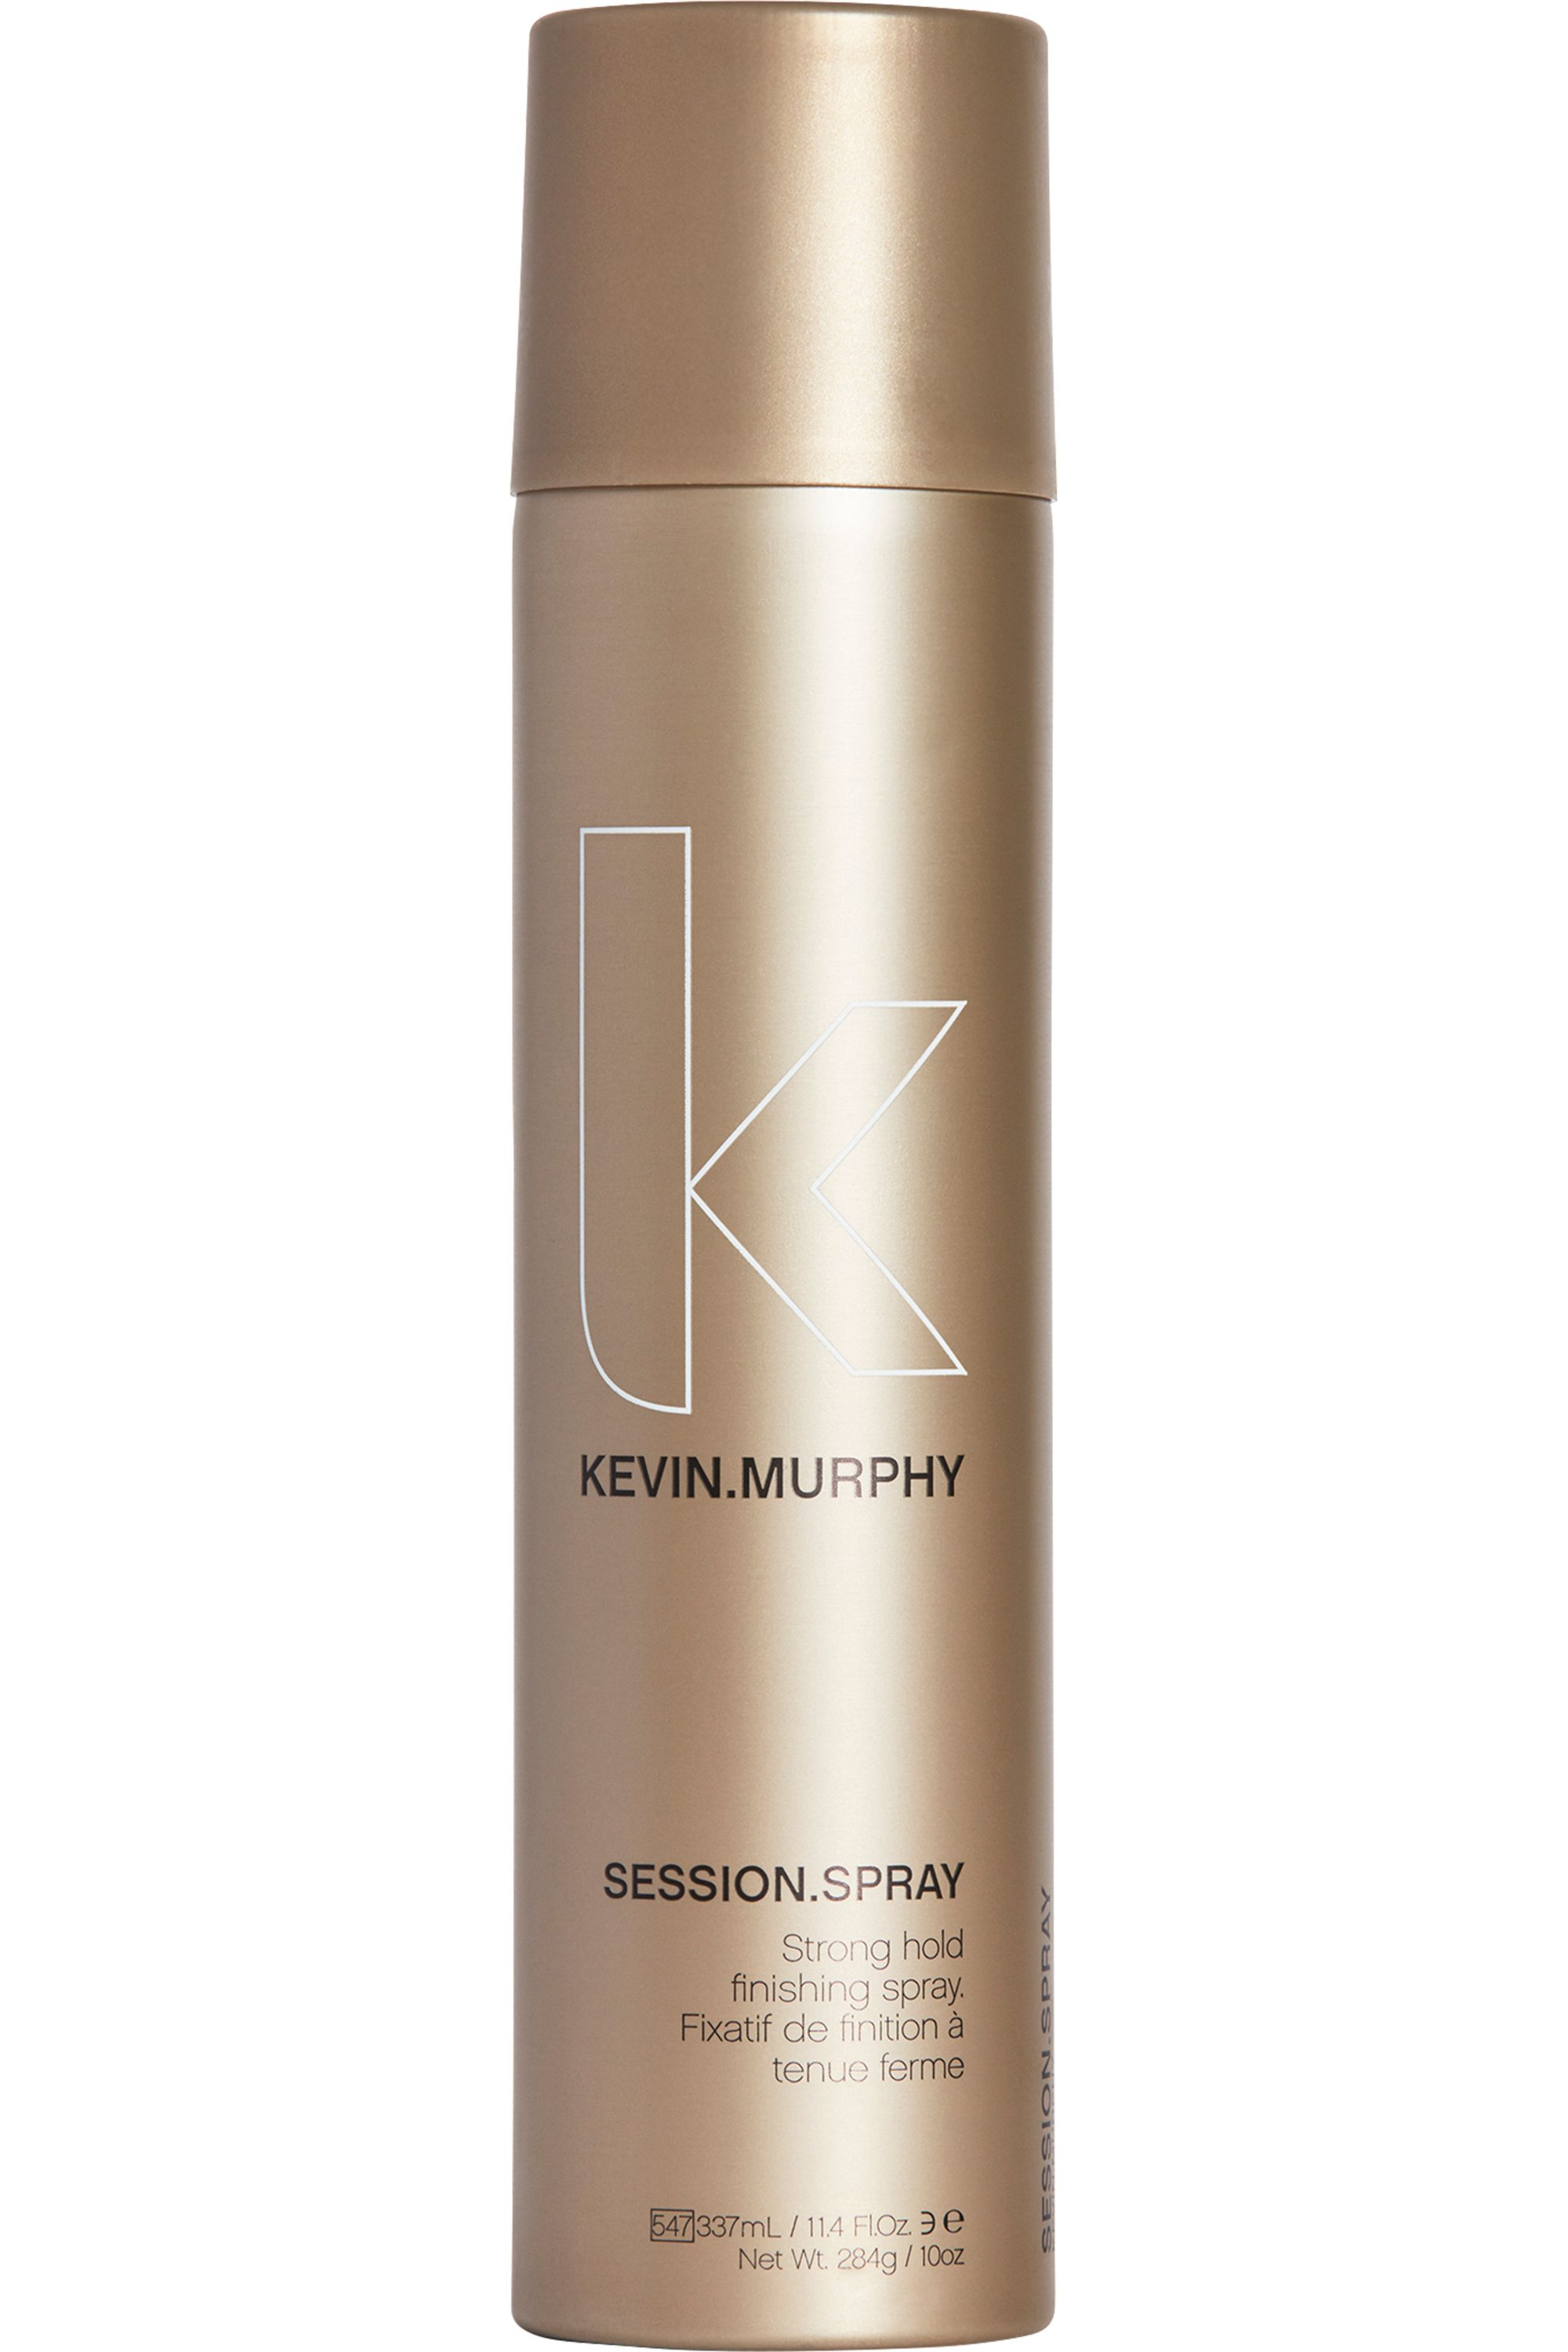 Blissim : KEVIN.MURPHY - Spray fixation forte SESSION.SPRAY - Spray fixation forte SESSION.SPRAY